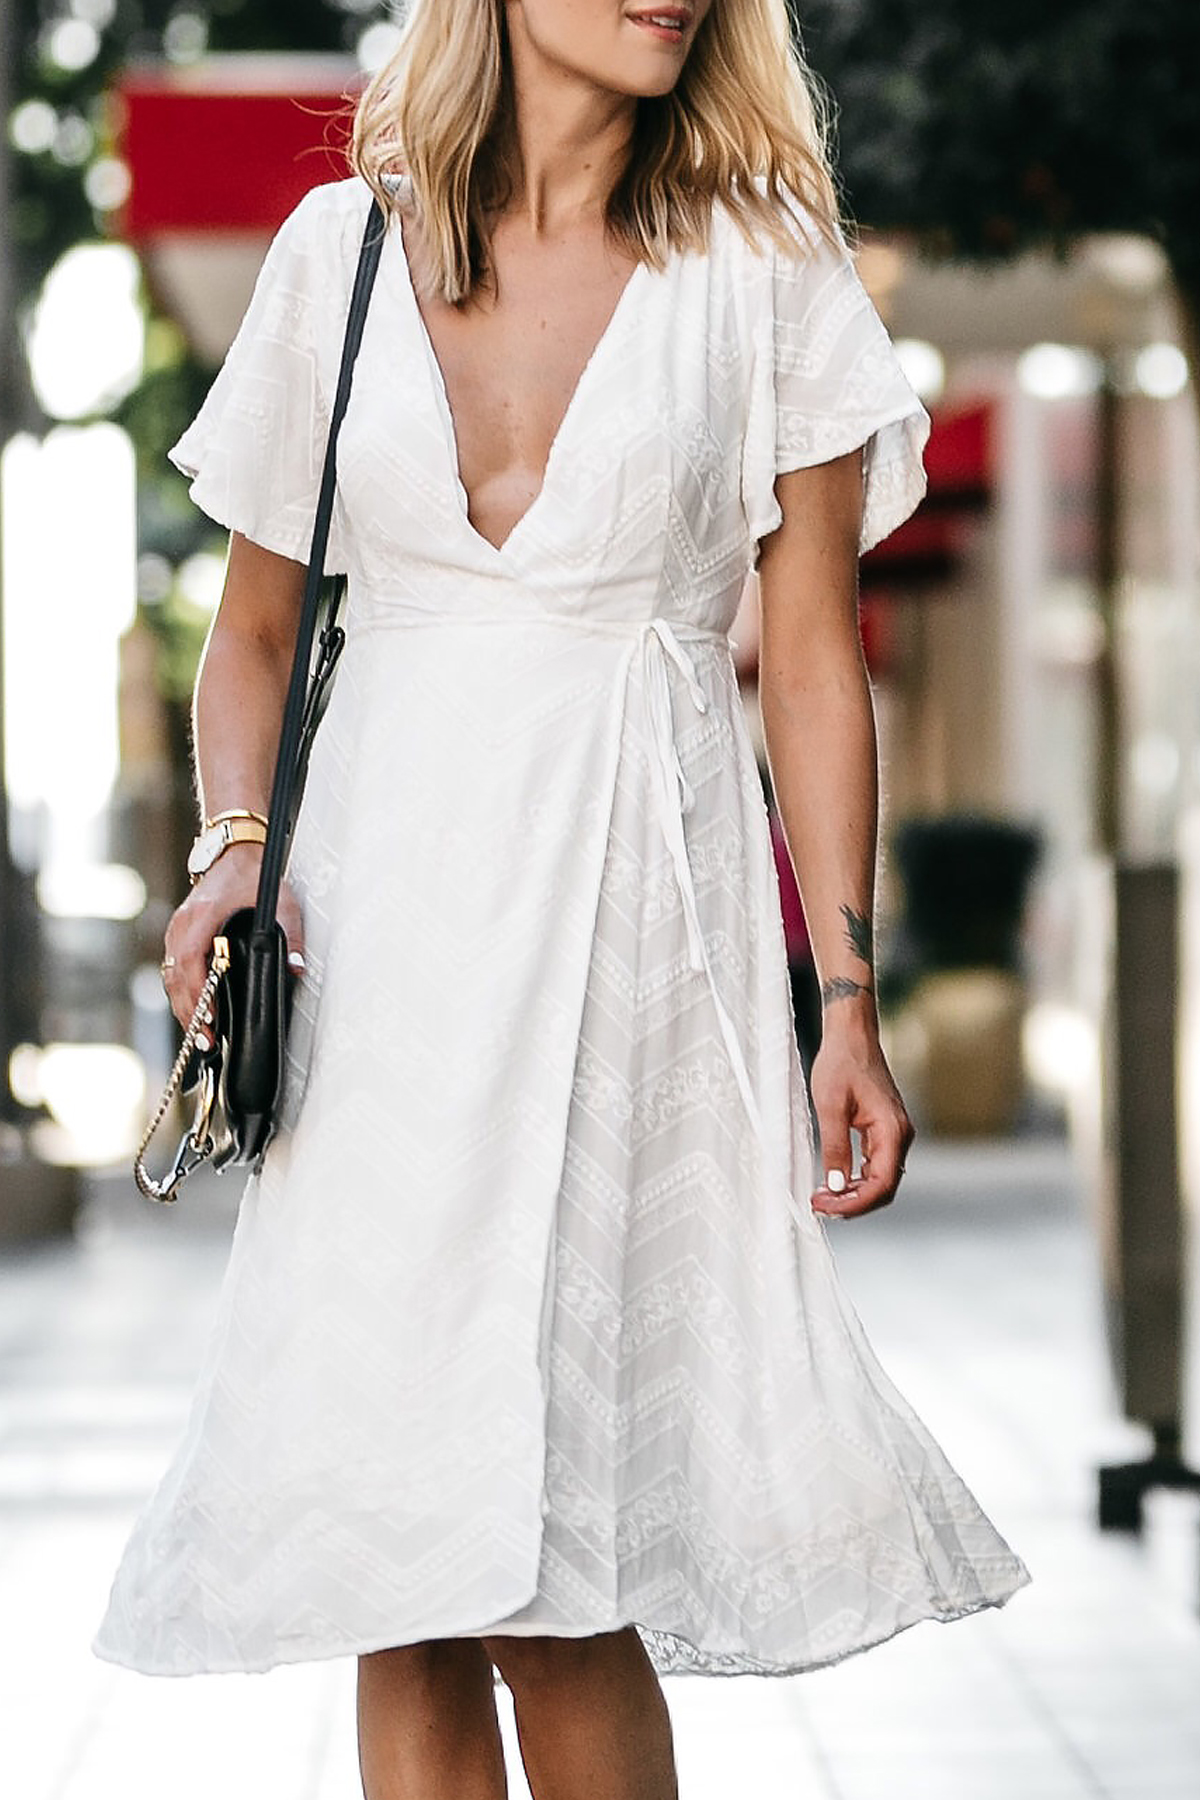 Blonde Woman Wearing Nordstrom Embroidered White Wrap Dress Fashion Jackson Dallas Blogger Fashion Blogger